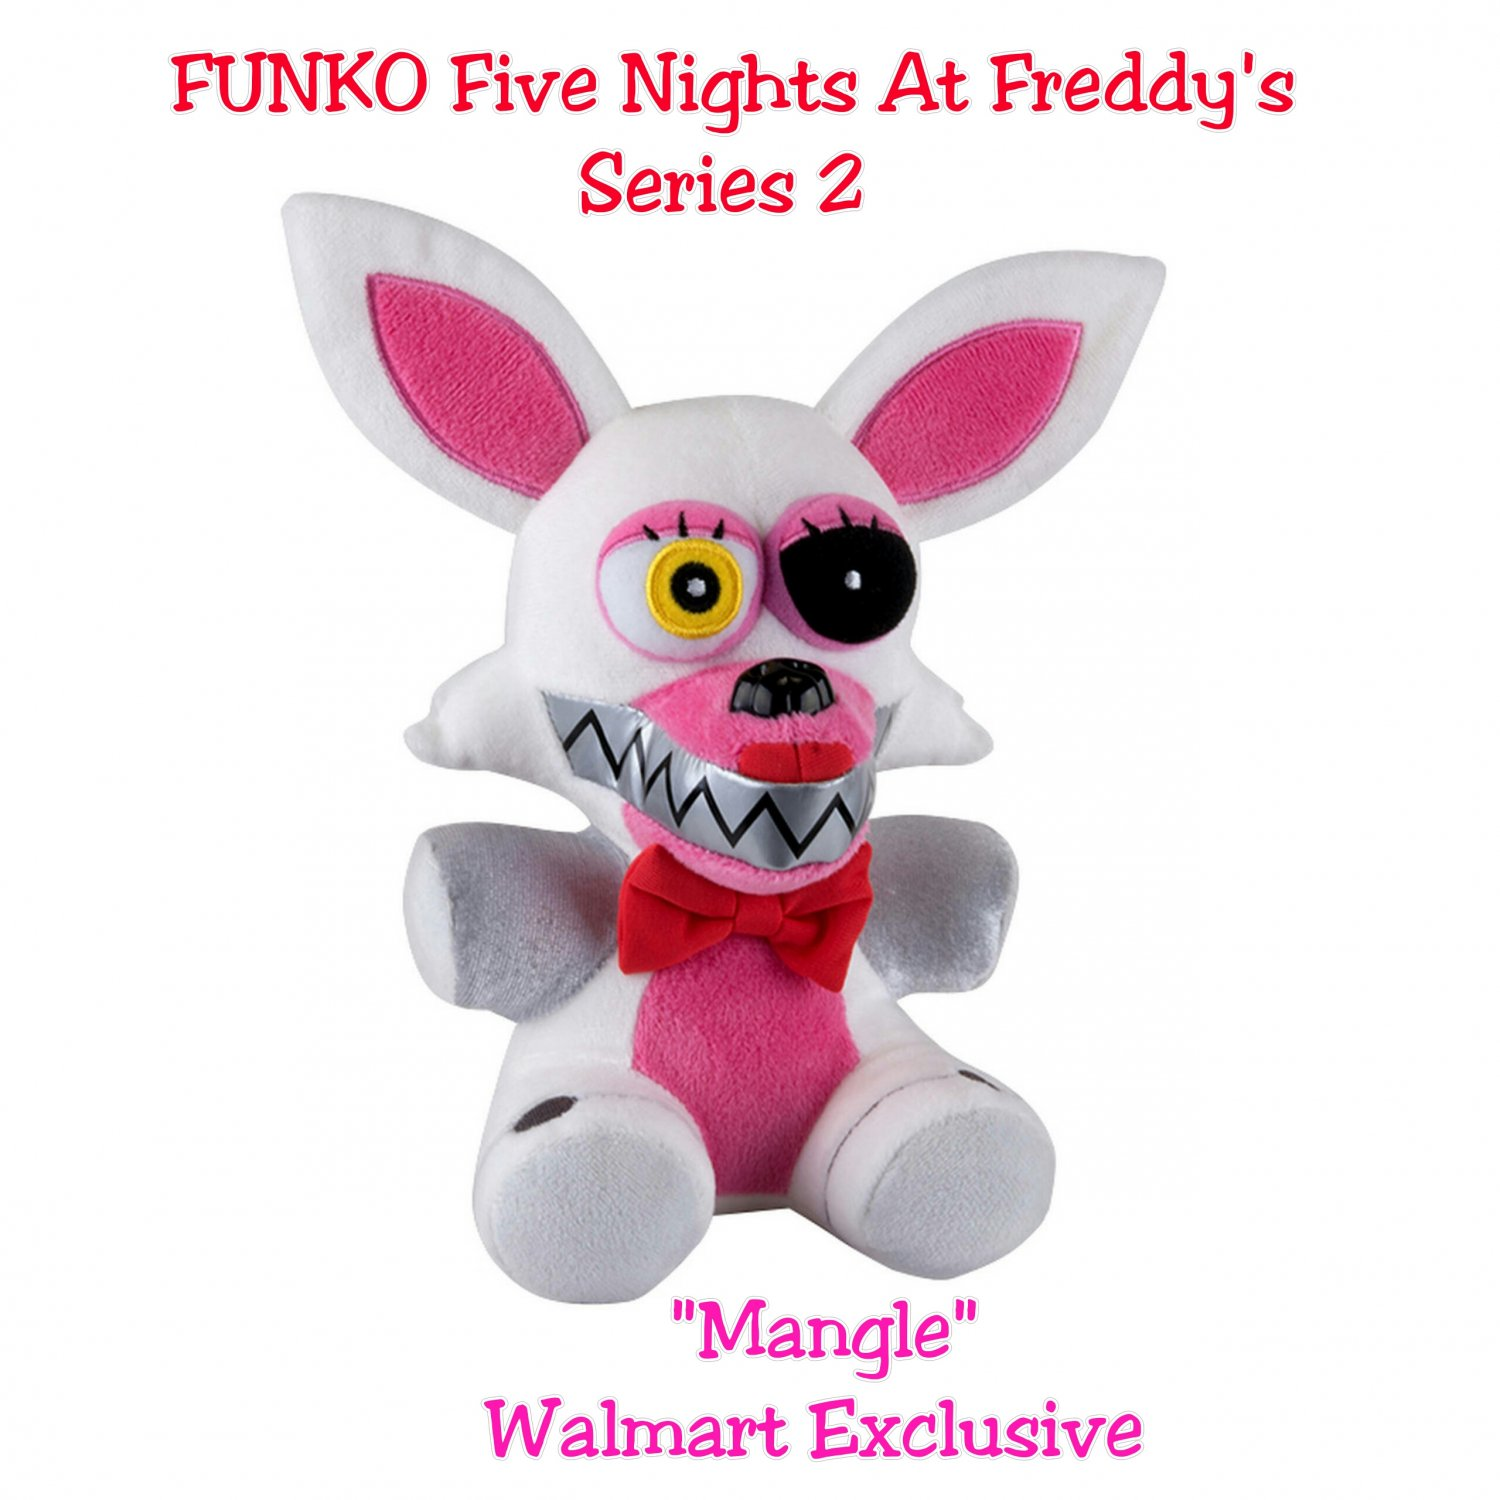 """Five Nights At Freddy's FNAF FUNKO Series 2 Mangle 6"""" Collectible Plush Figure Walmart Exclusive"""